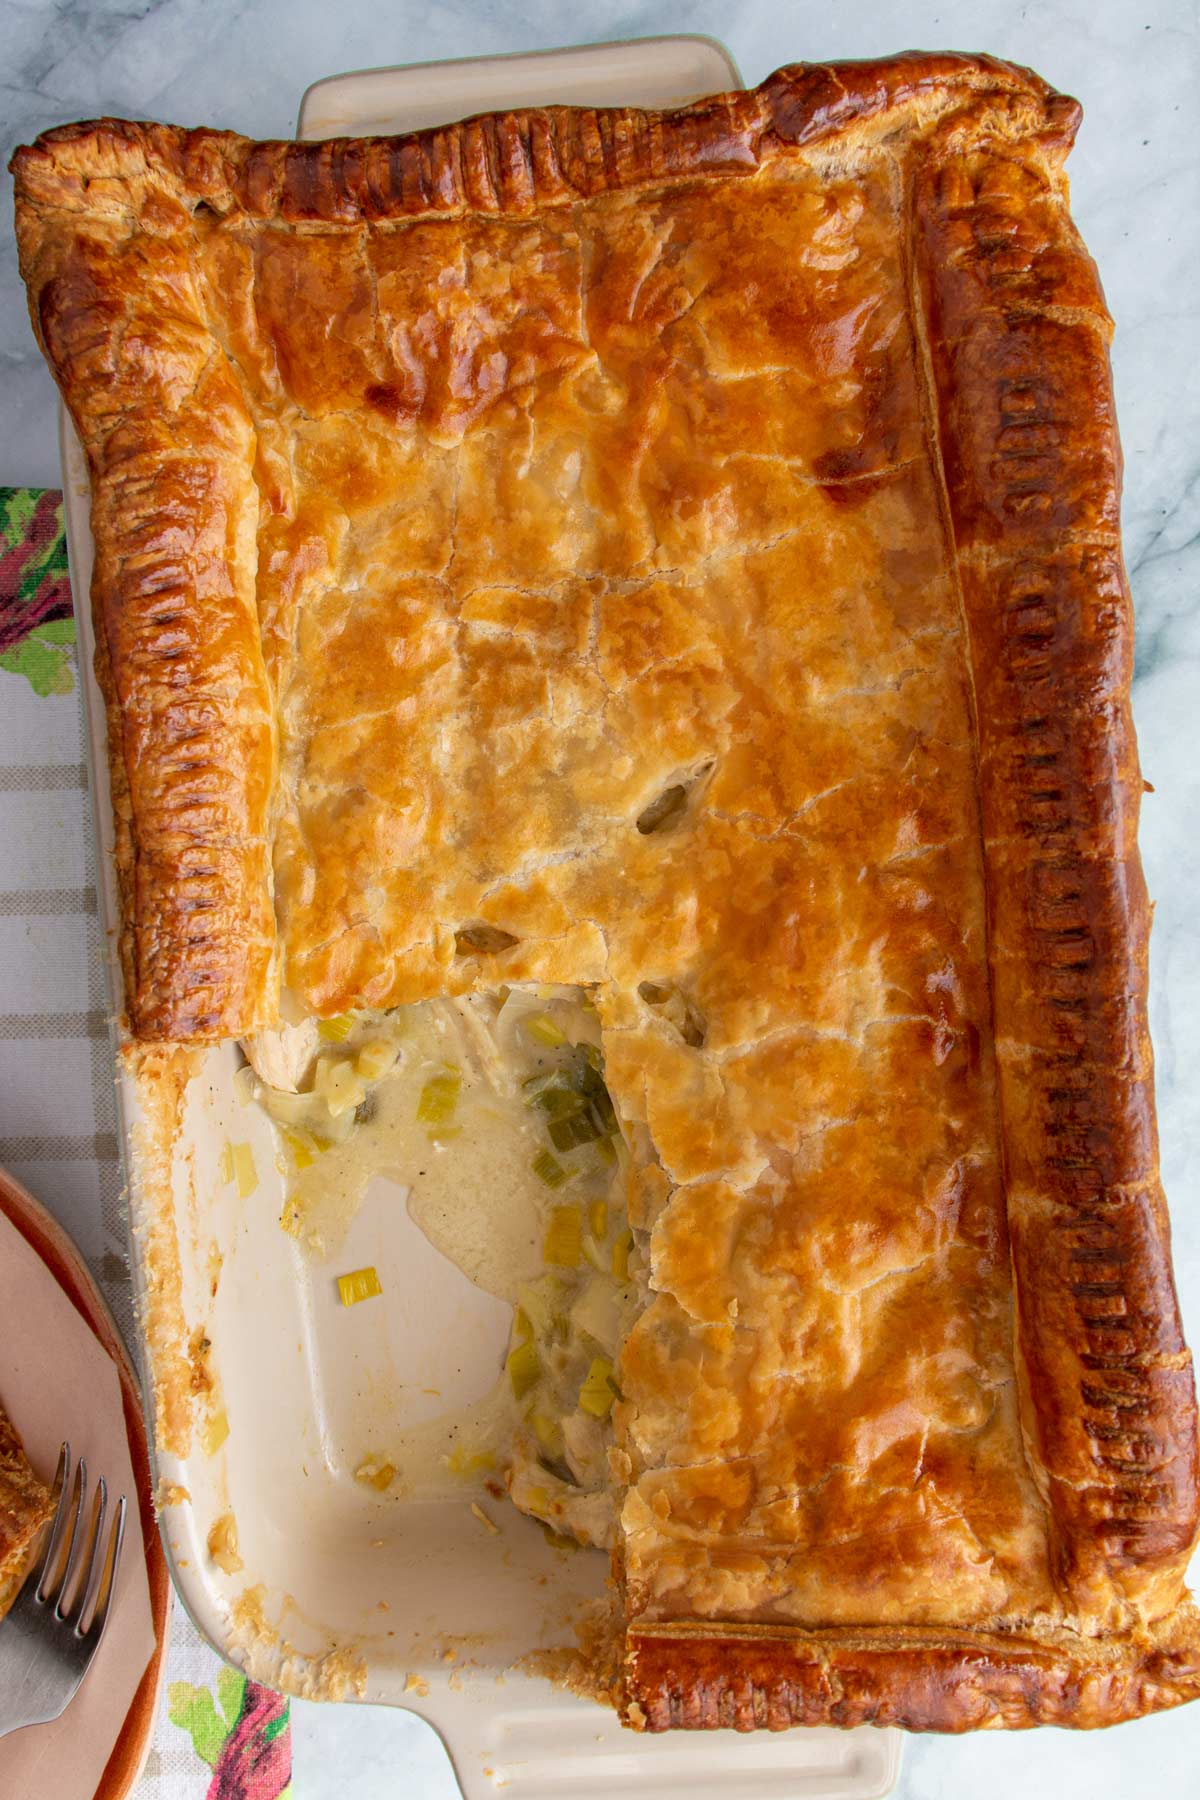 A rectangular savory pie in a ceramic baking dish with a square portion cut out.